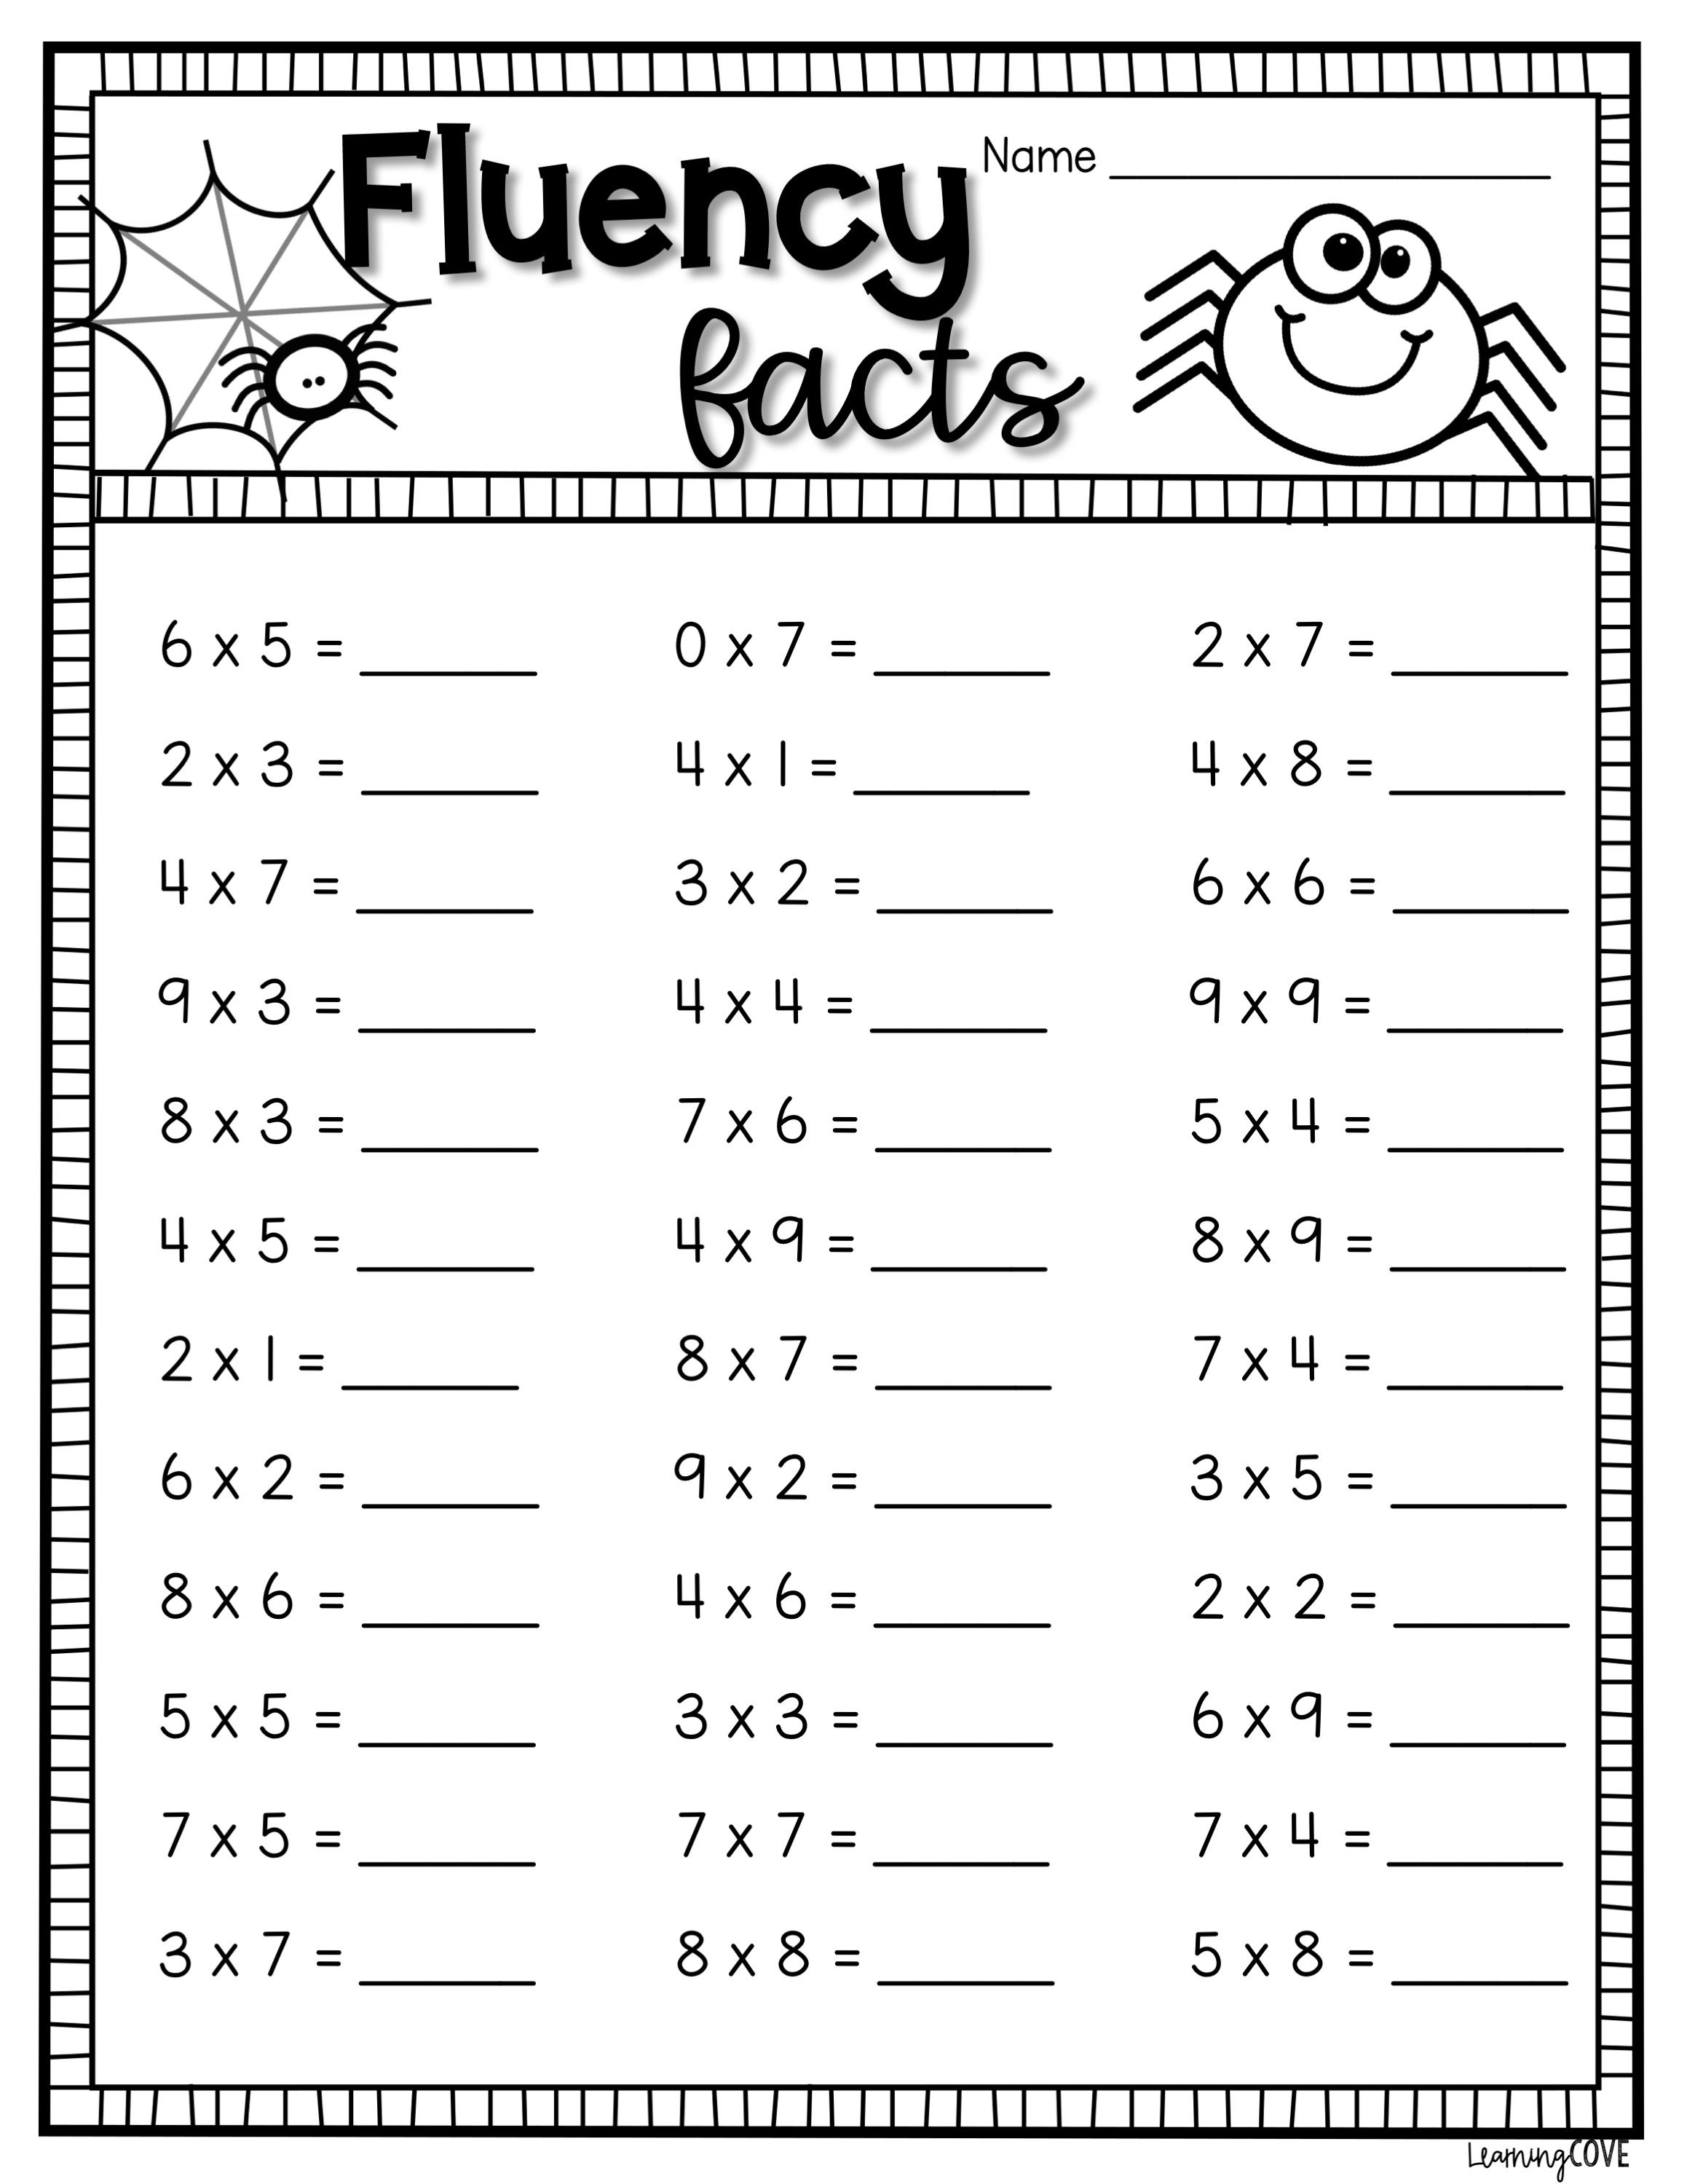 small resolution of Halloween Math Multiplication Worksheets   Math addition worksheets